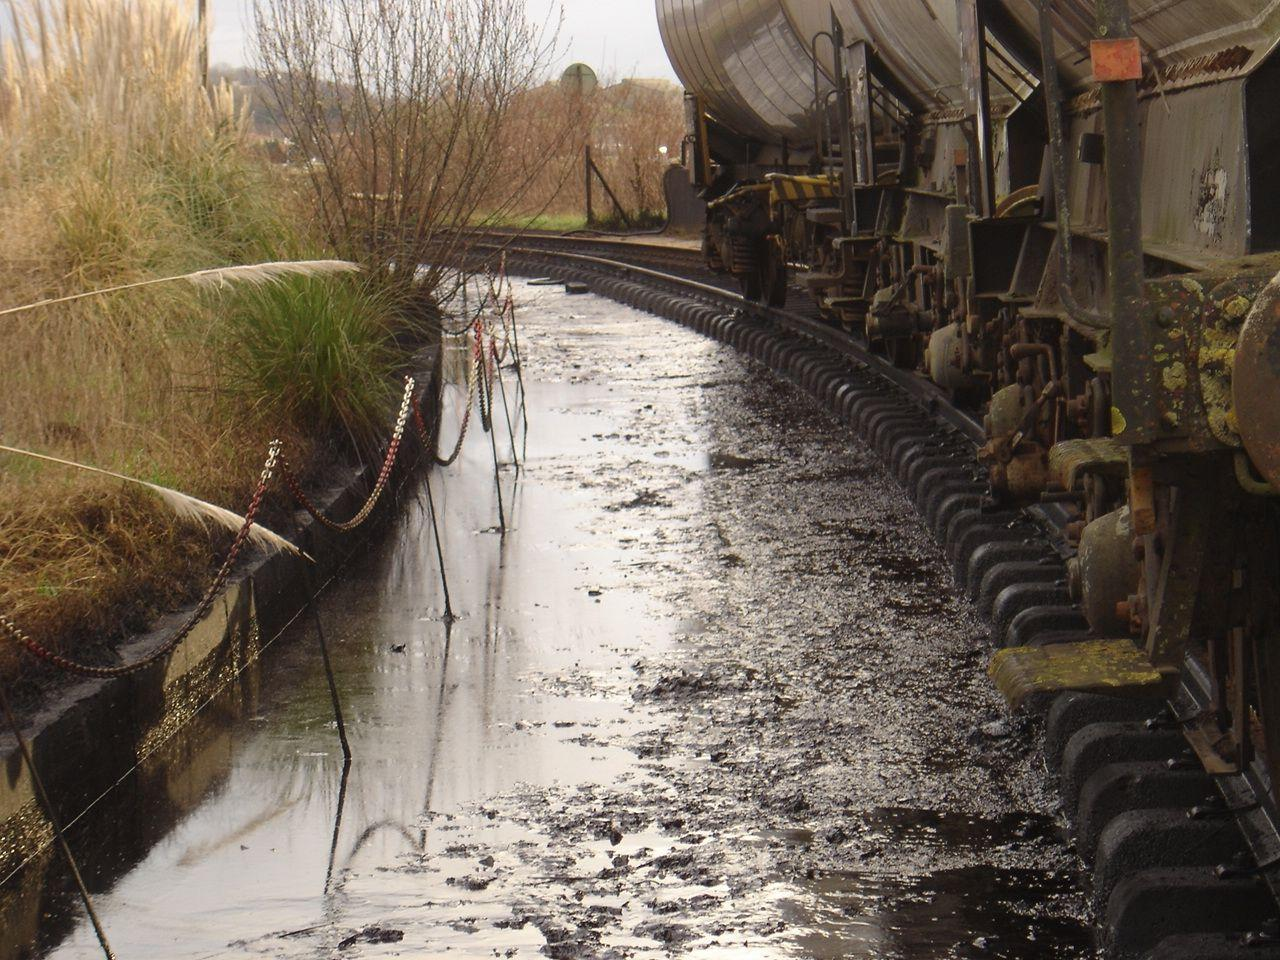 Diesel oil spillage caused by a leaking tank.